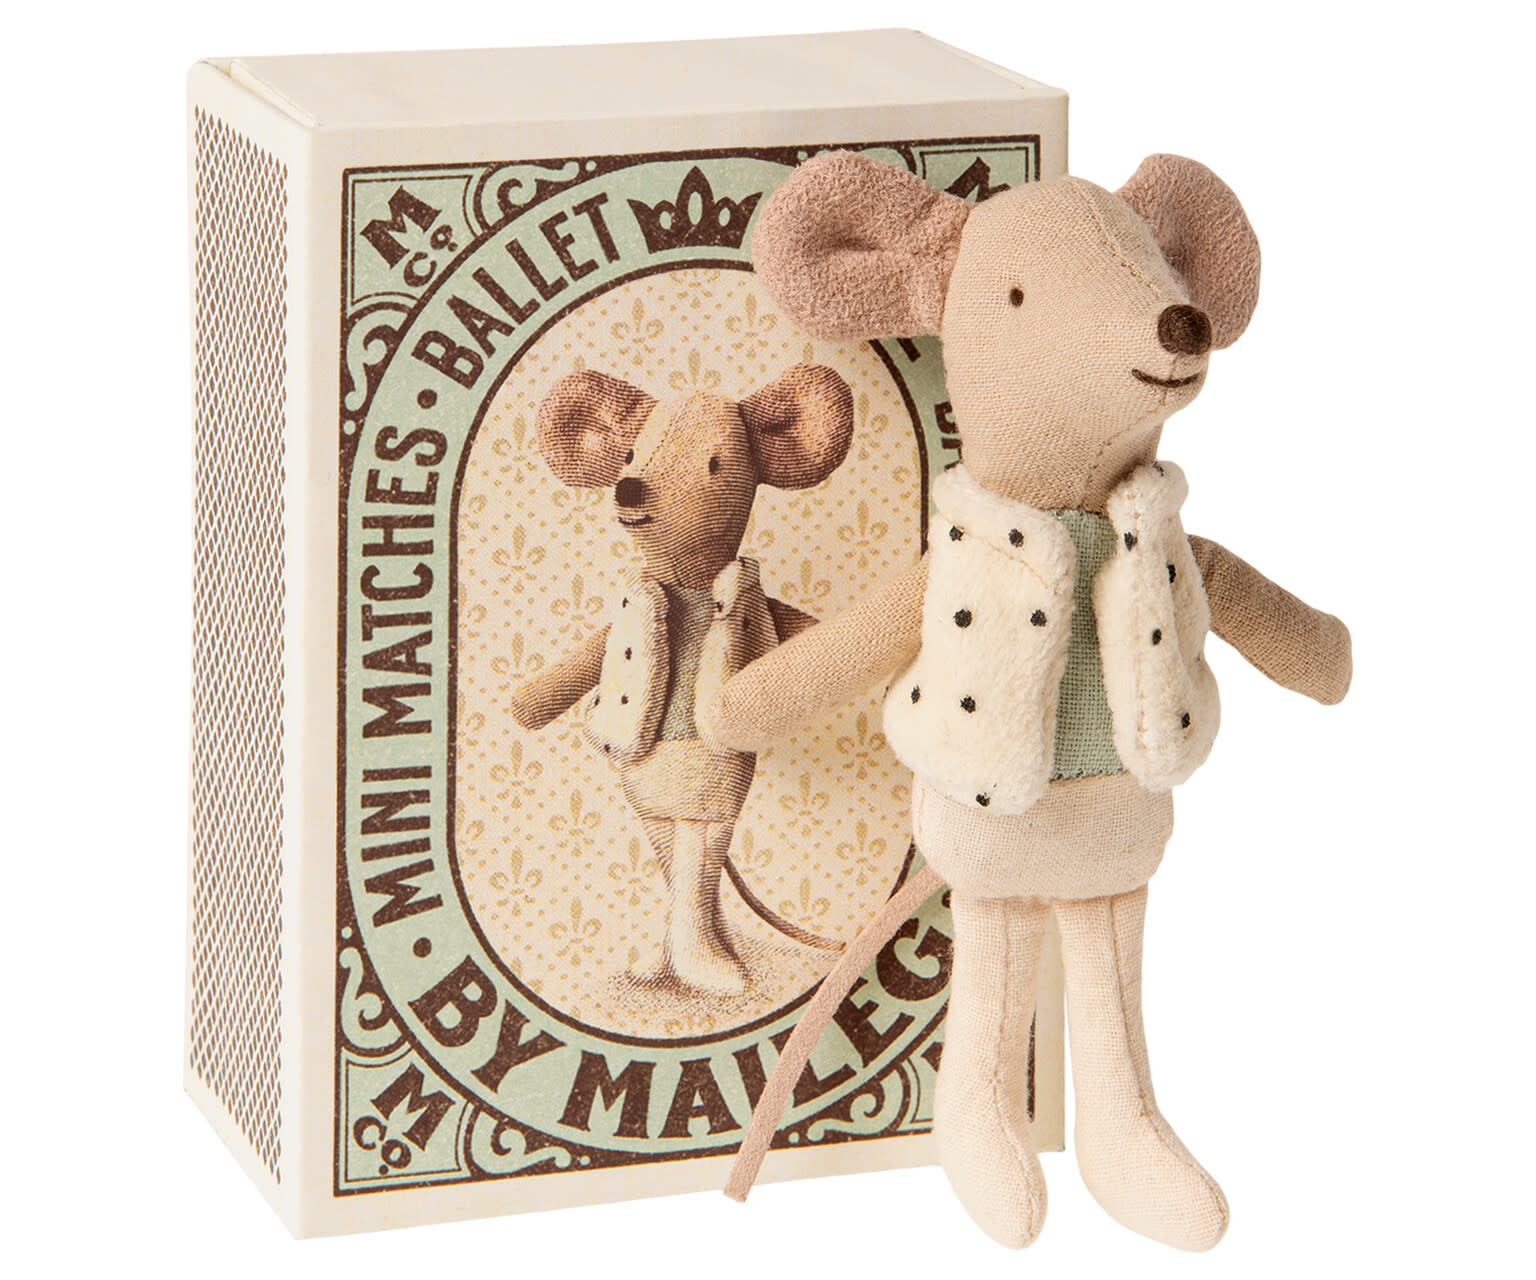 Dancer in matchbox, little brother mouse-2